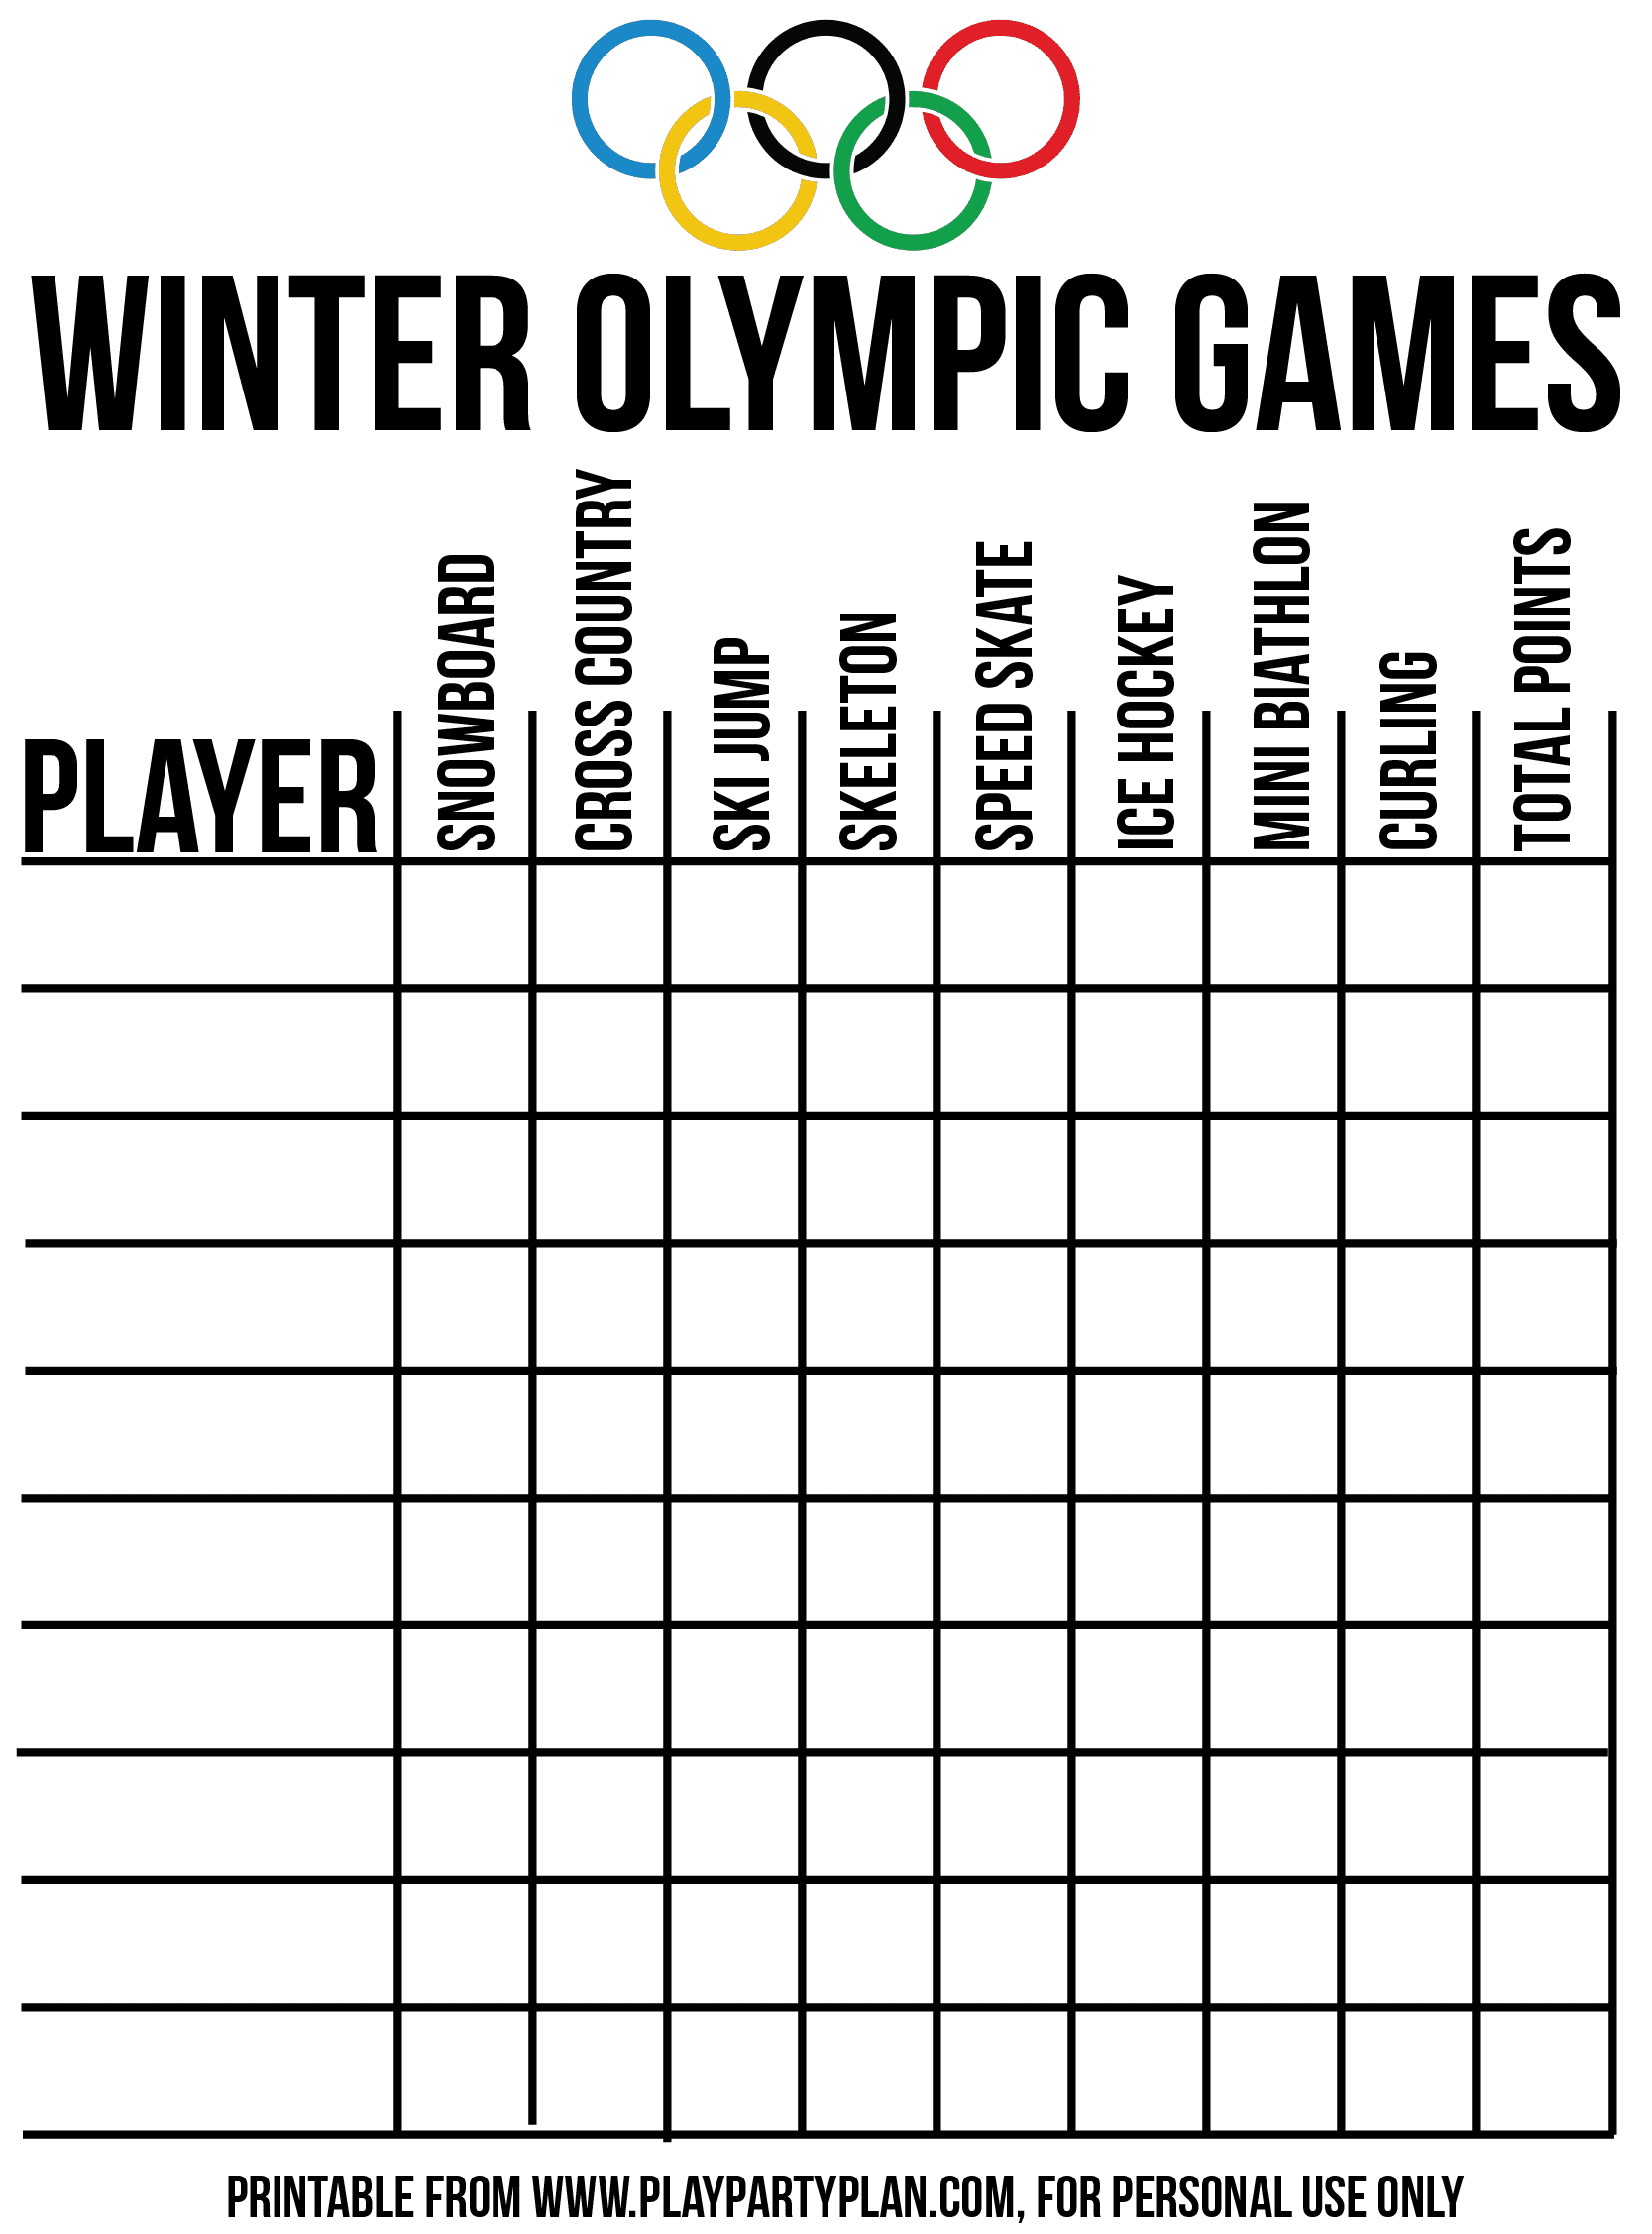 Great Olympic themed party scorecard for games